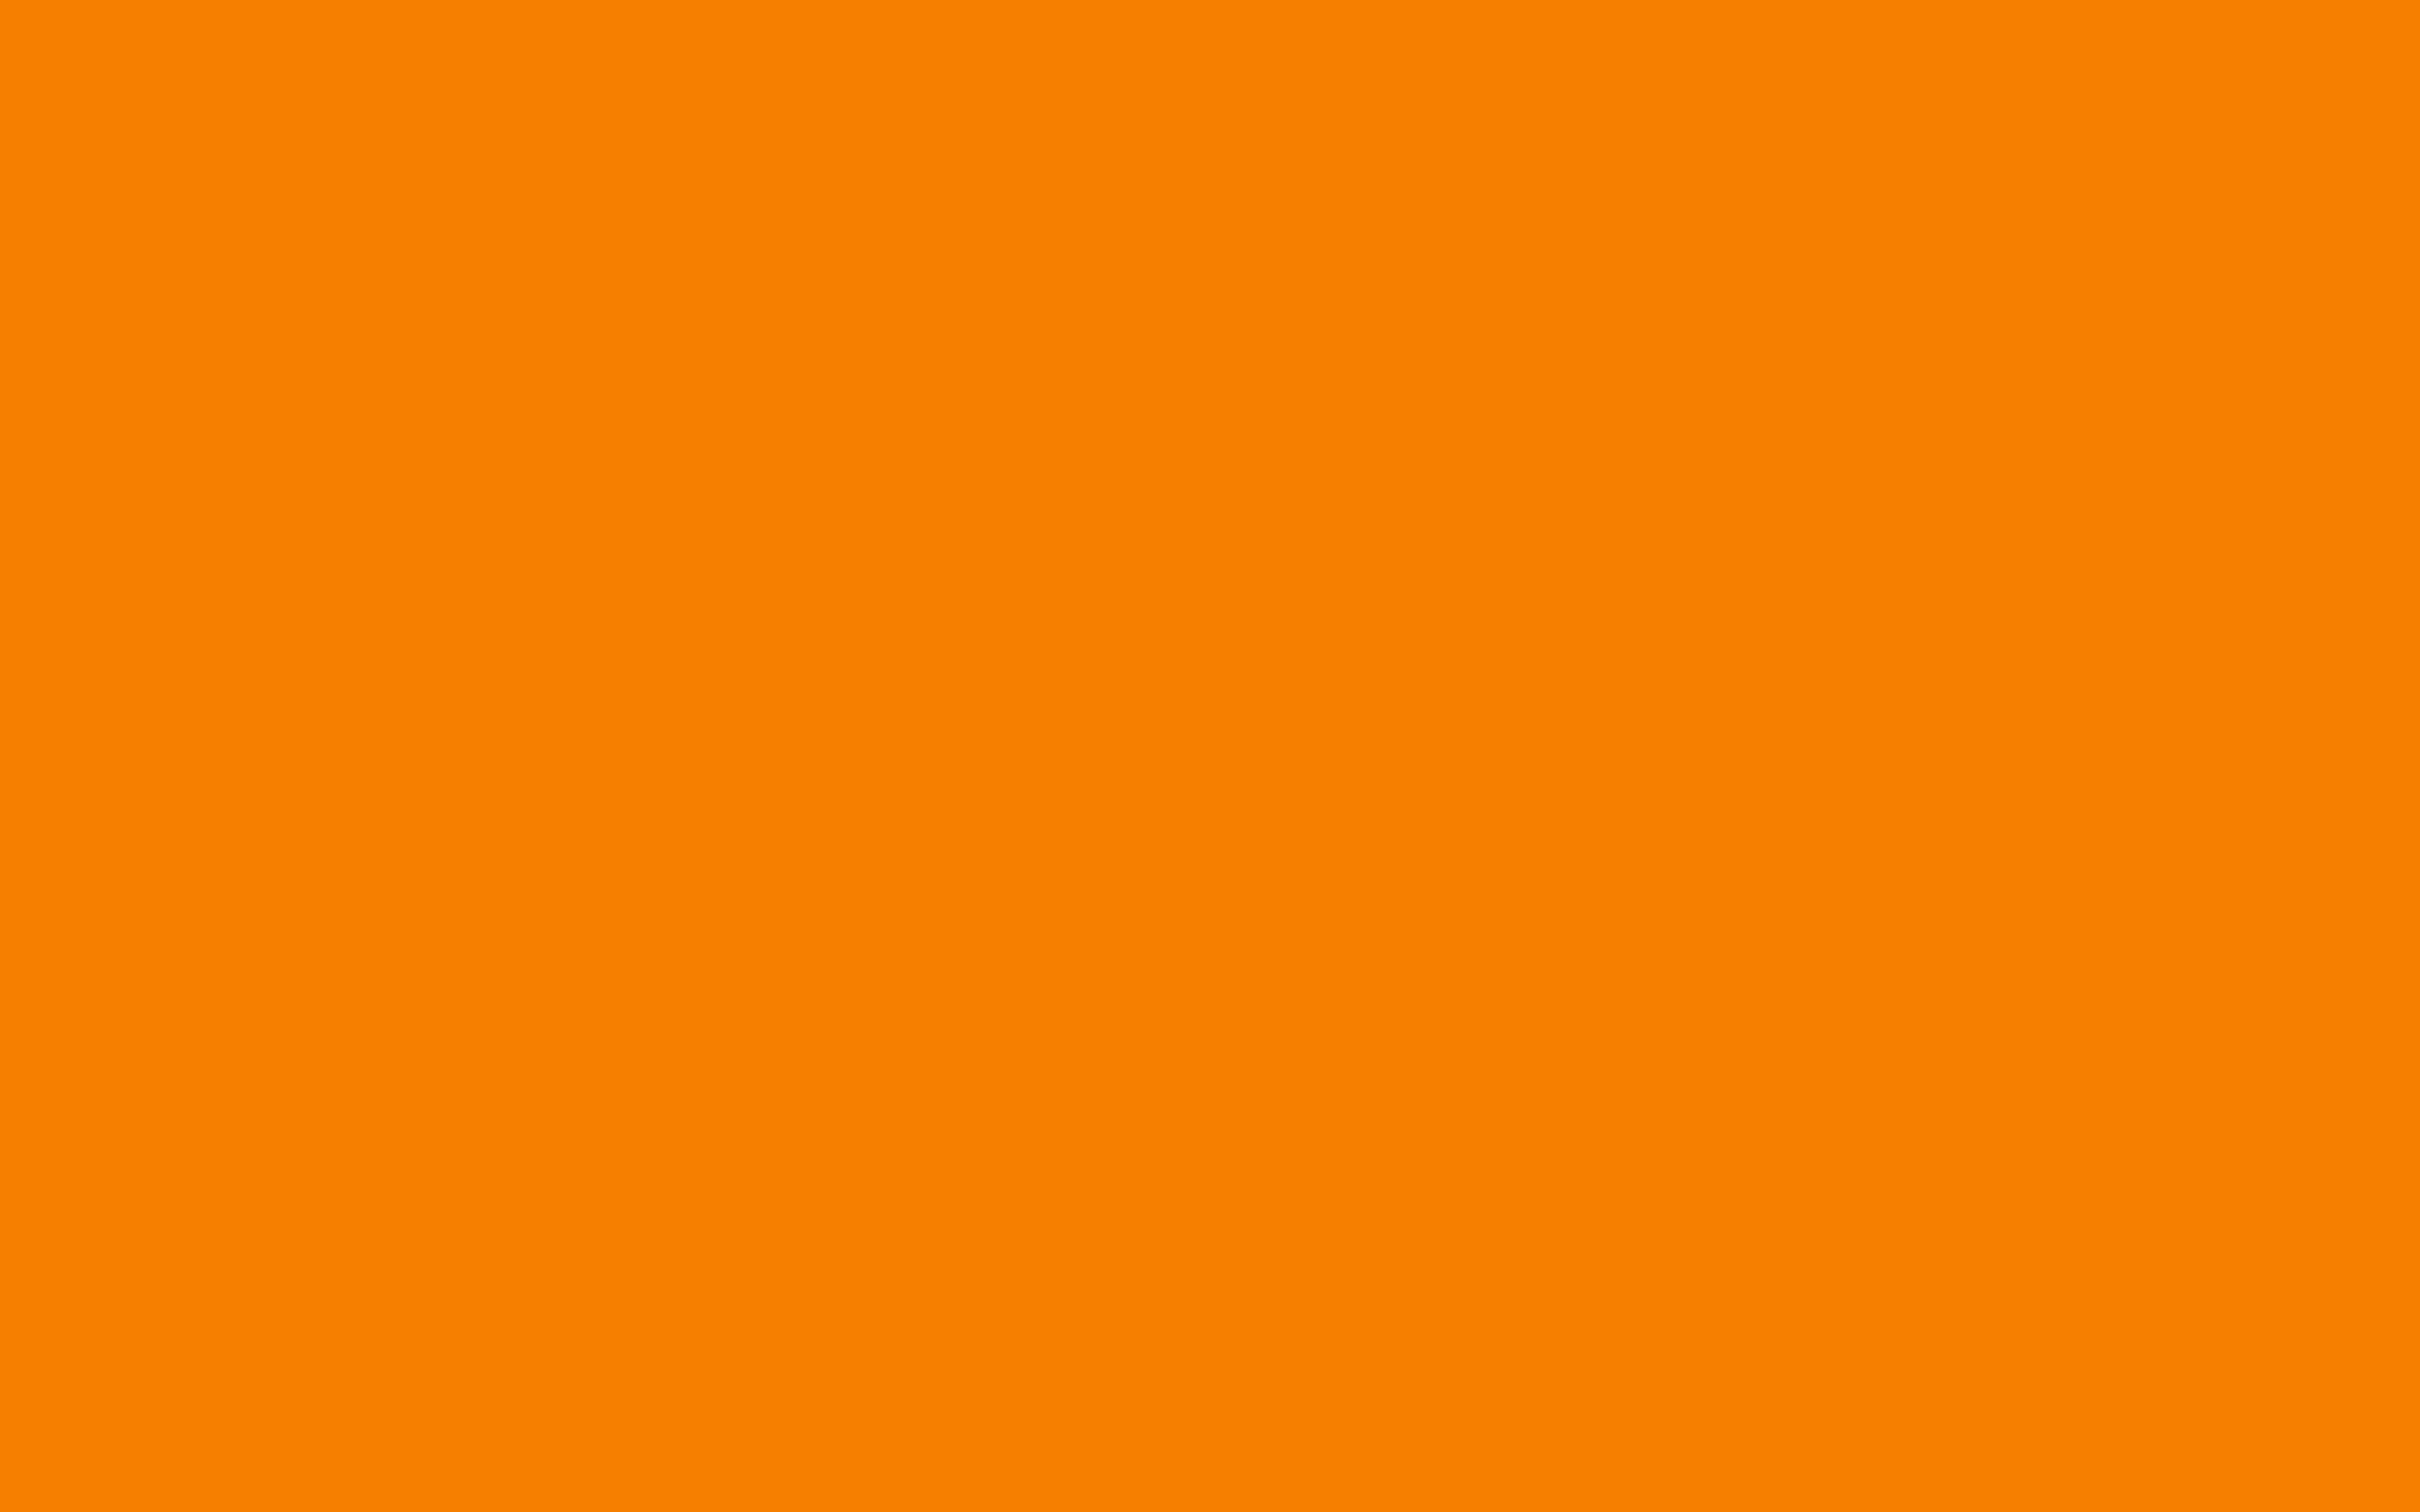 2560x1600 University Of Tennessee Orange Solid Color Background